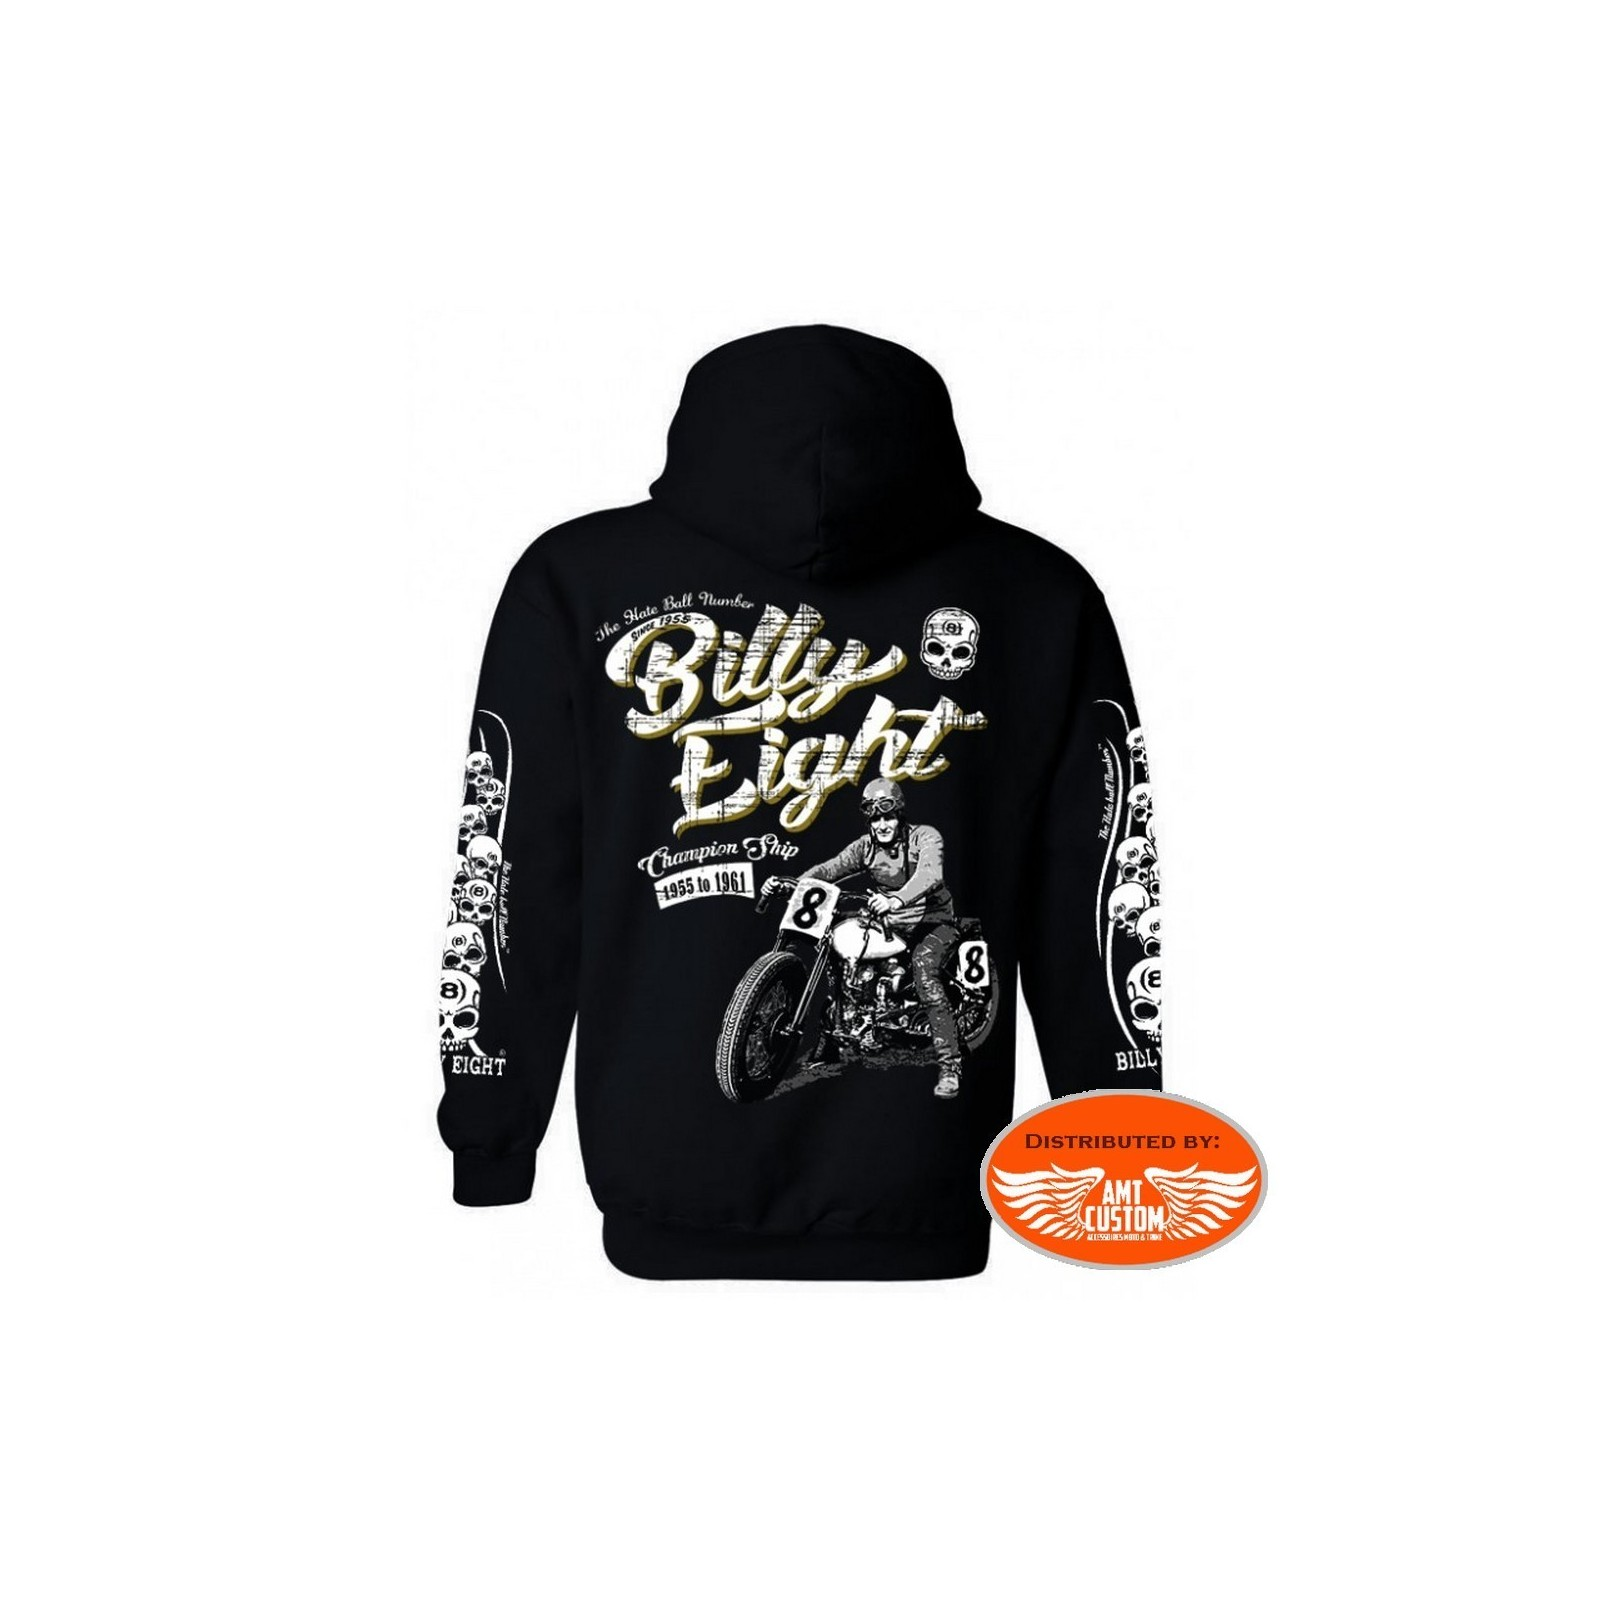 Veste capuche sweat biker Billy Eight Champion Ship